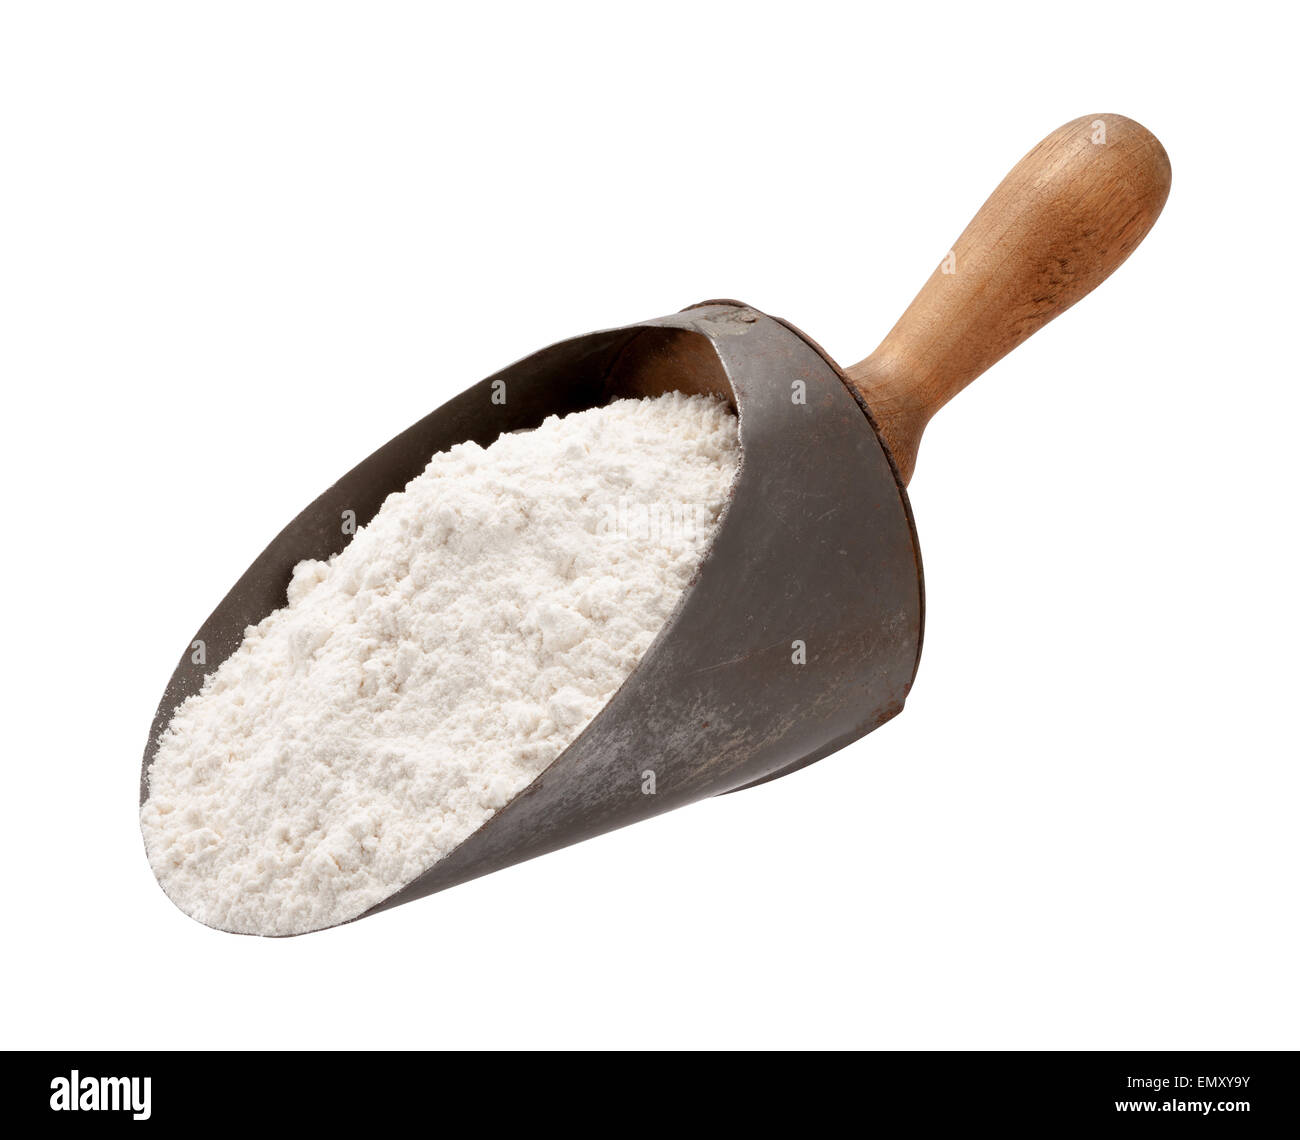 Flour in a Antique Metal Scoop - Stock Image